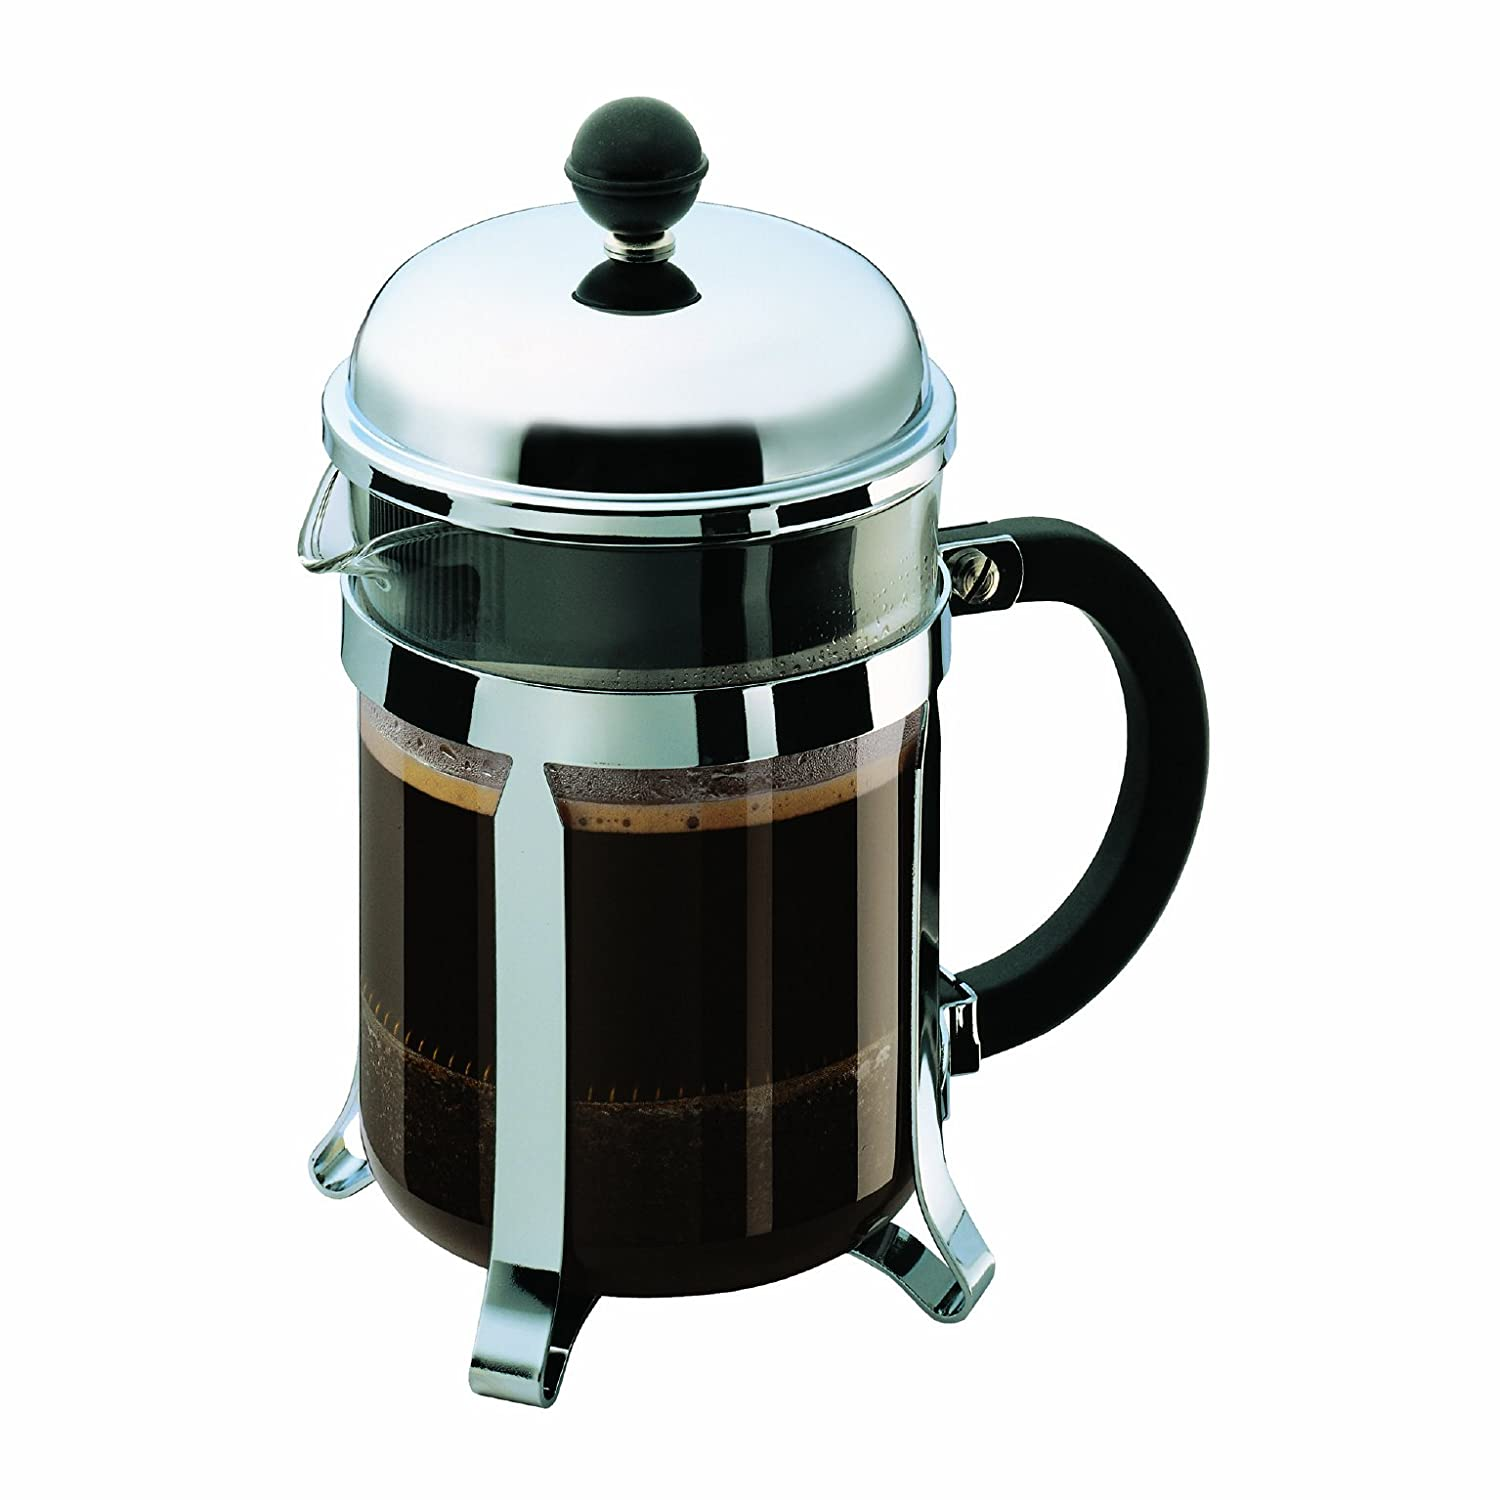 bodum chambord 4 cup shatterproof french press coffemaker 0 5 l 17 ounce new 727015991467 ebay. Black Bedroom Furniture Sets. Home Design Ideas